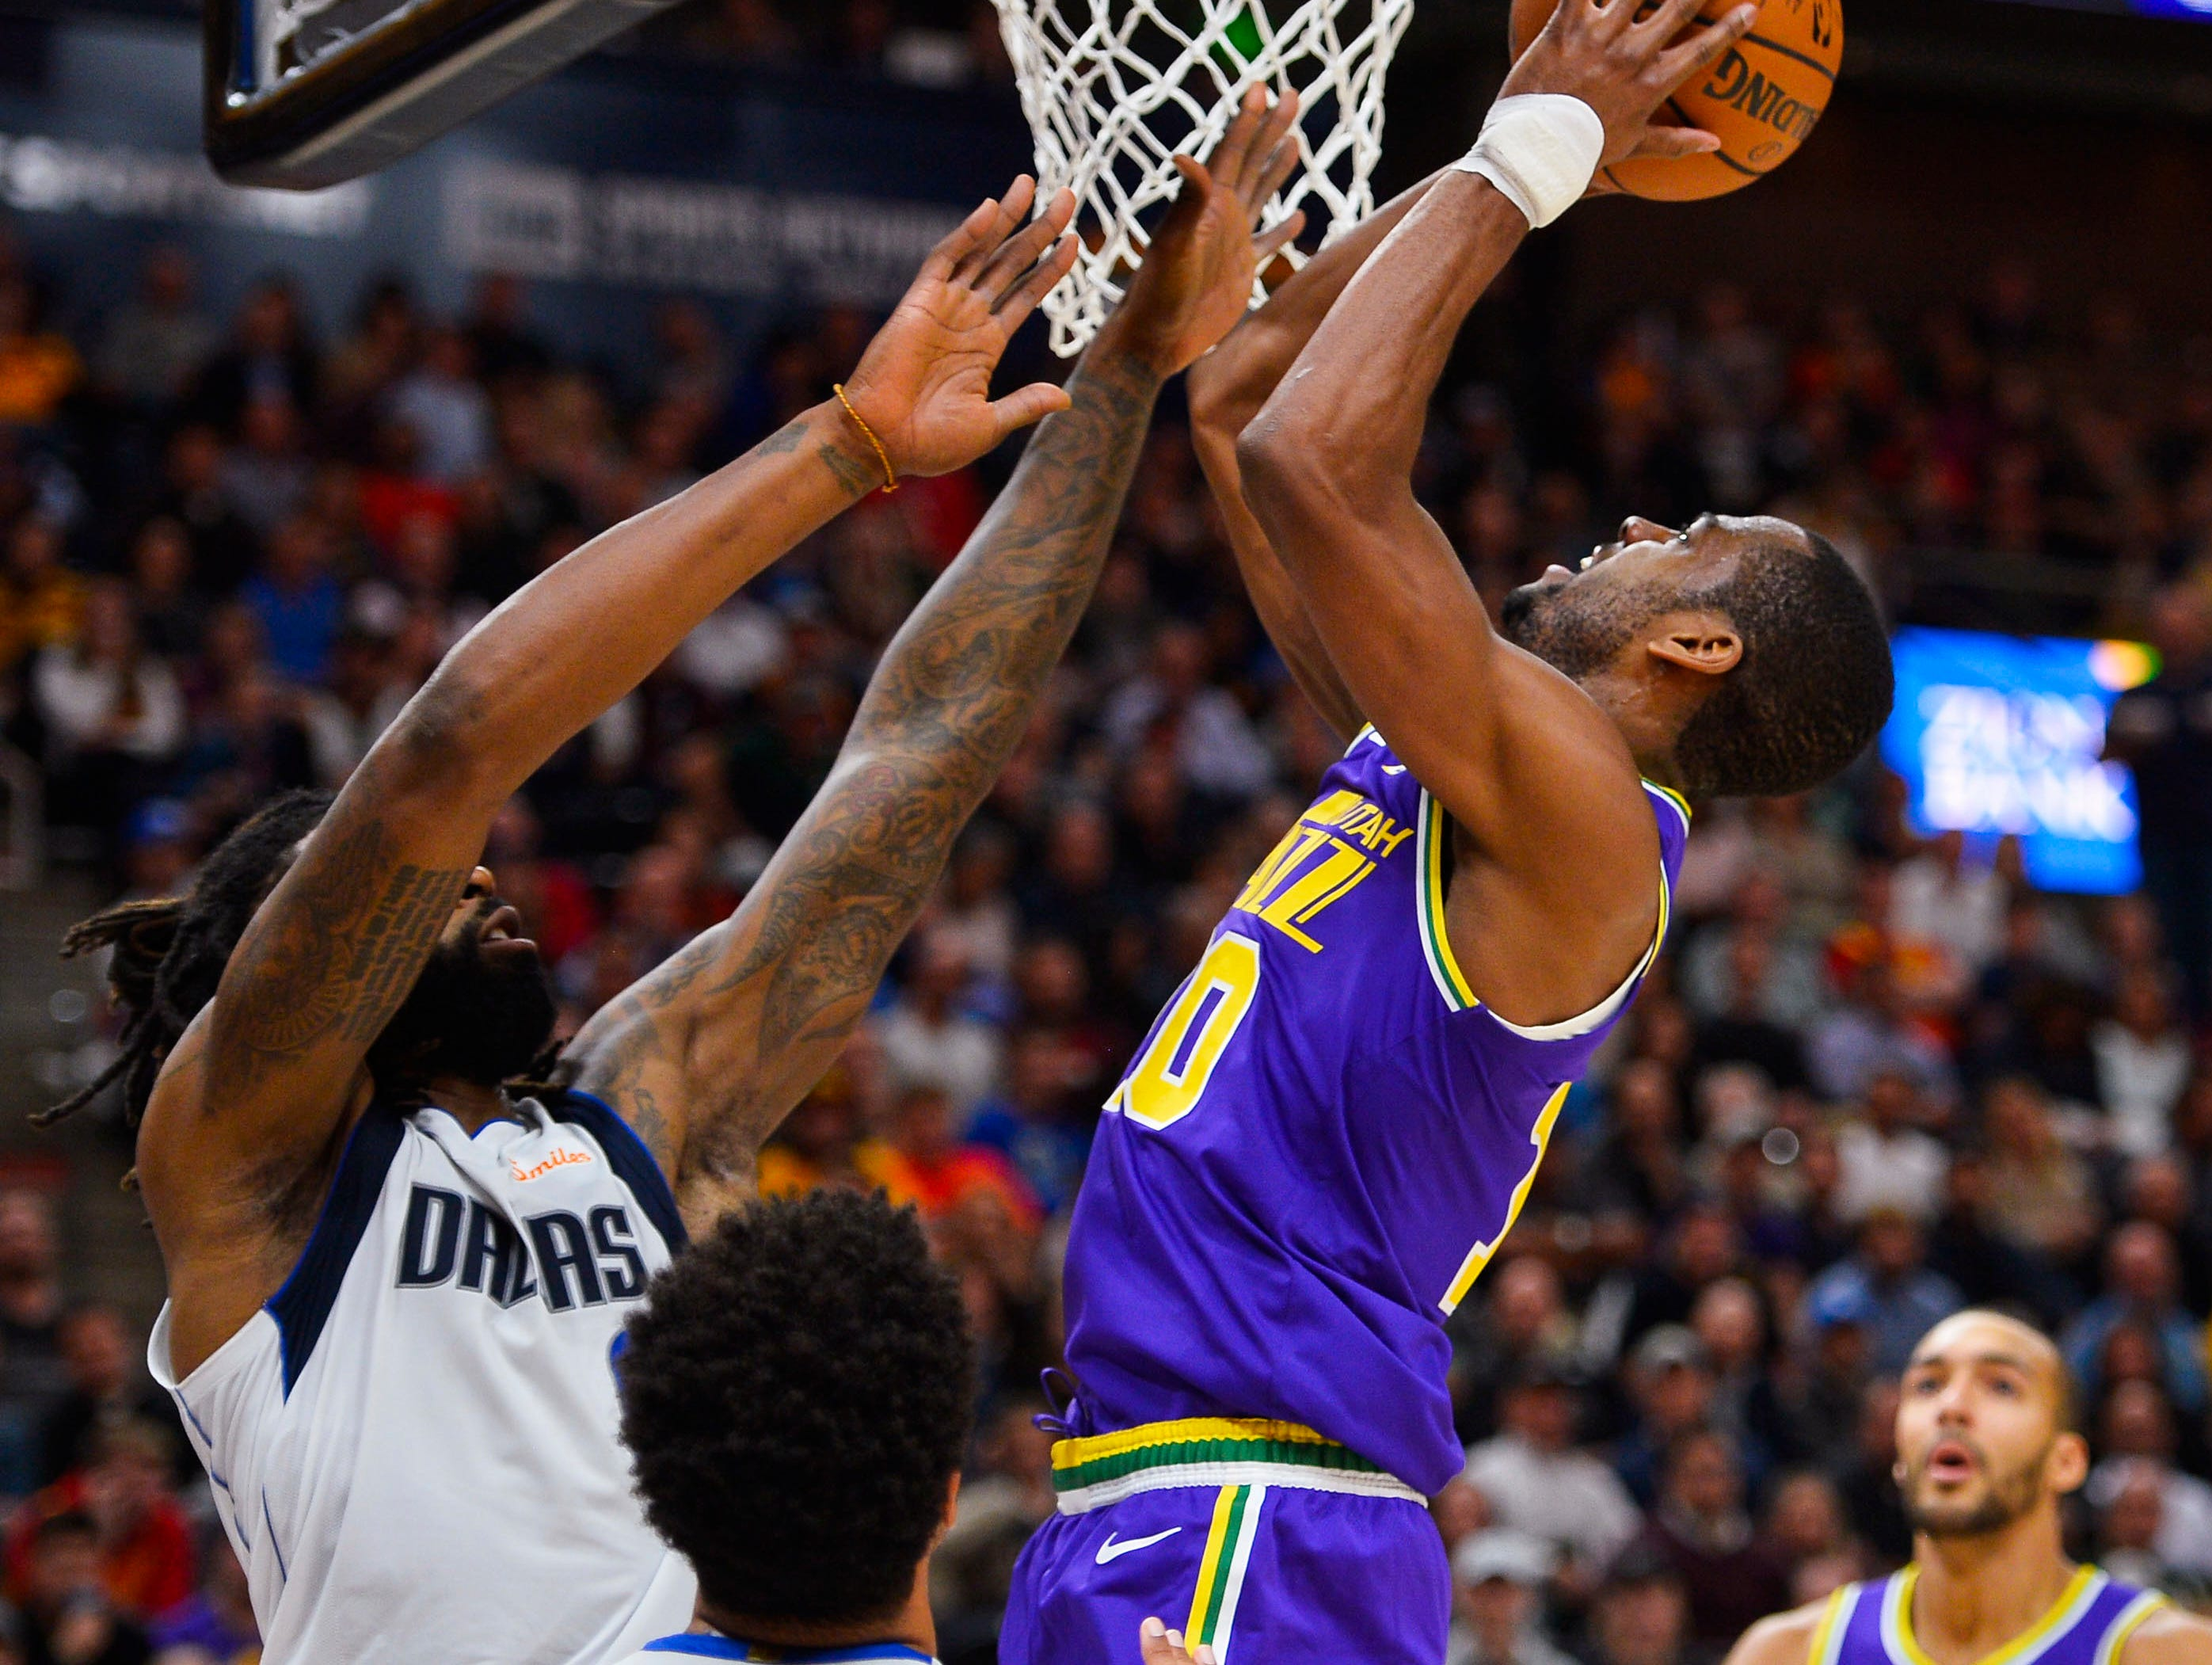 Utah Jazz guard Alec Burks (10) shoots over Dallas Mavericks center DeAndre Jordan, left, during the first half of an NBA basketball game Wednesday, Nov. 7, 2018, in Salt Lake City. (AP Photo/Alex Goodlett)